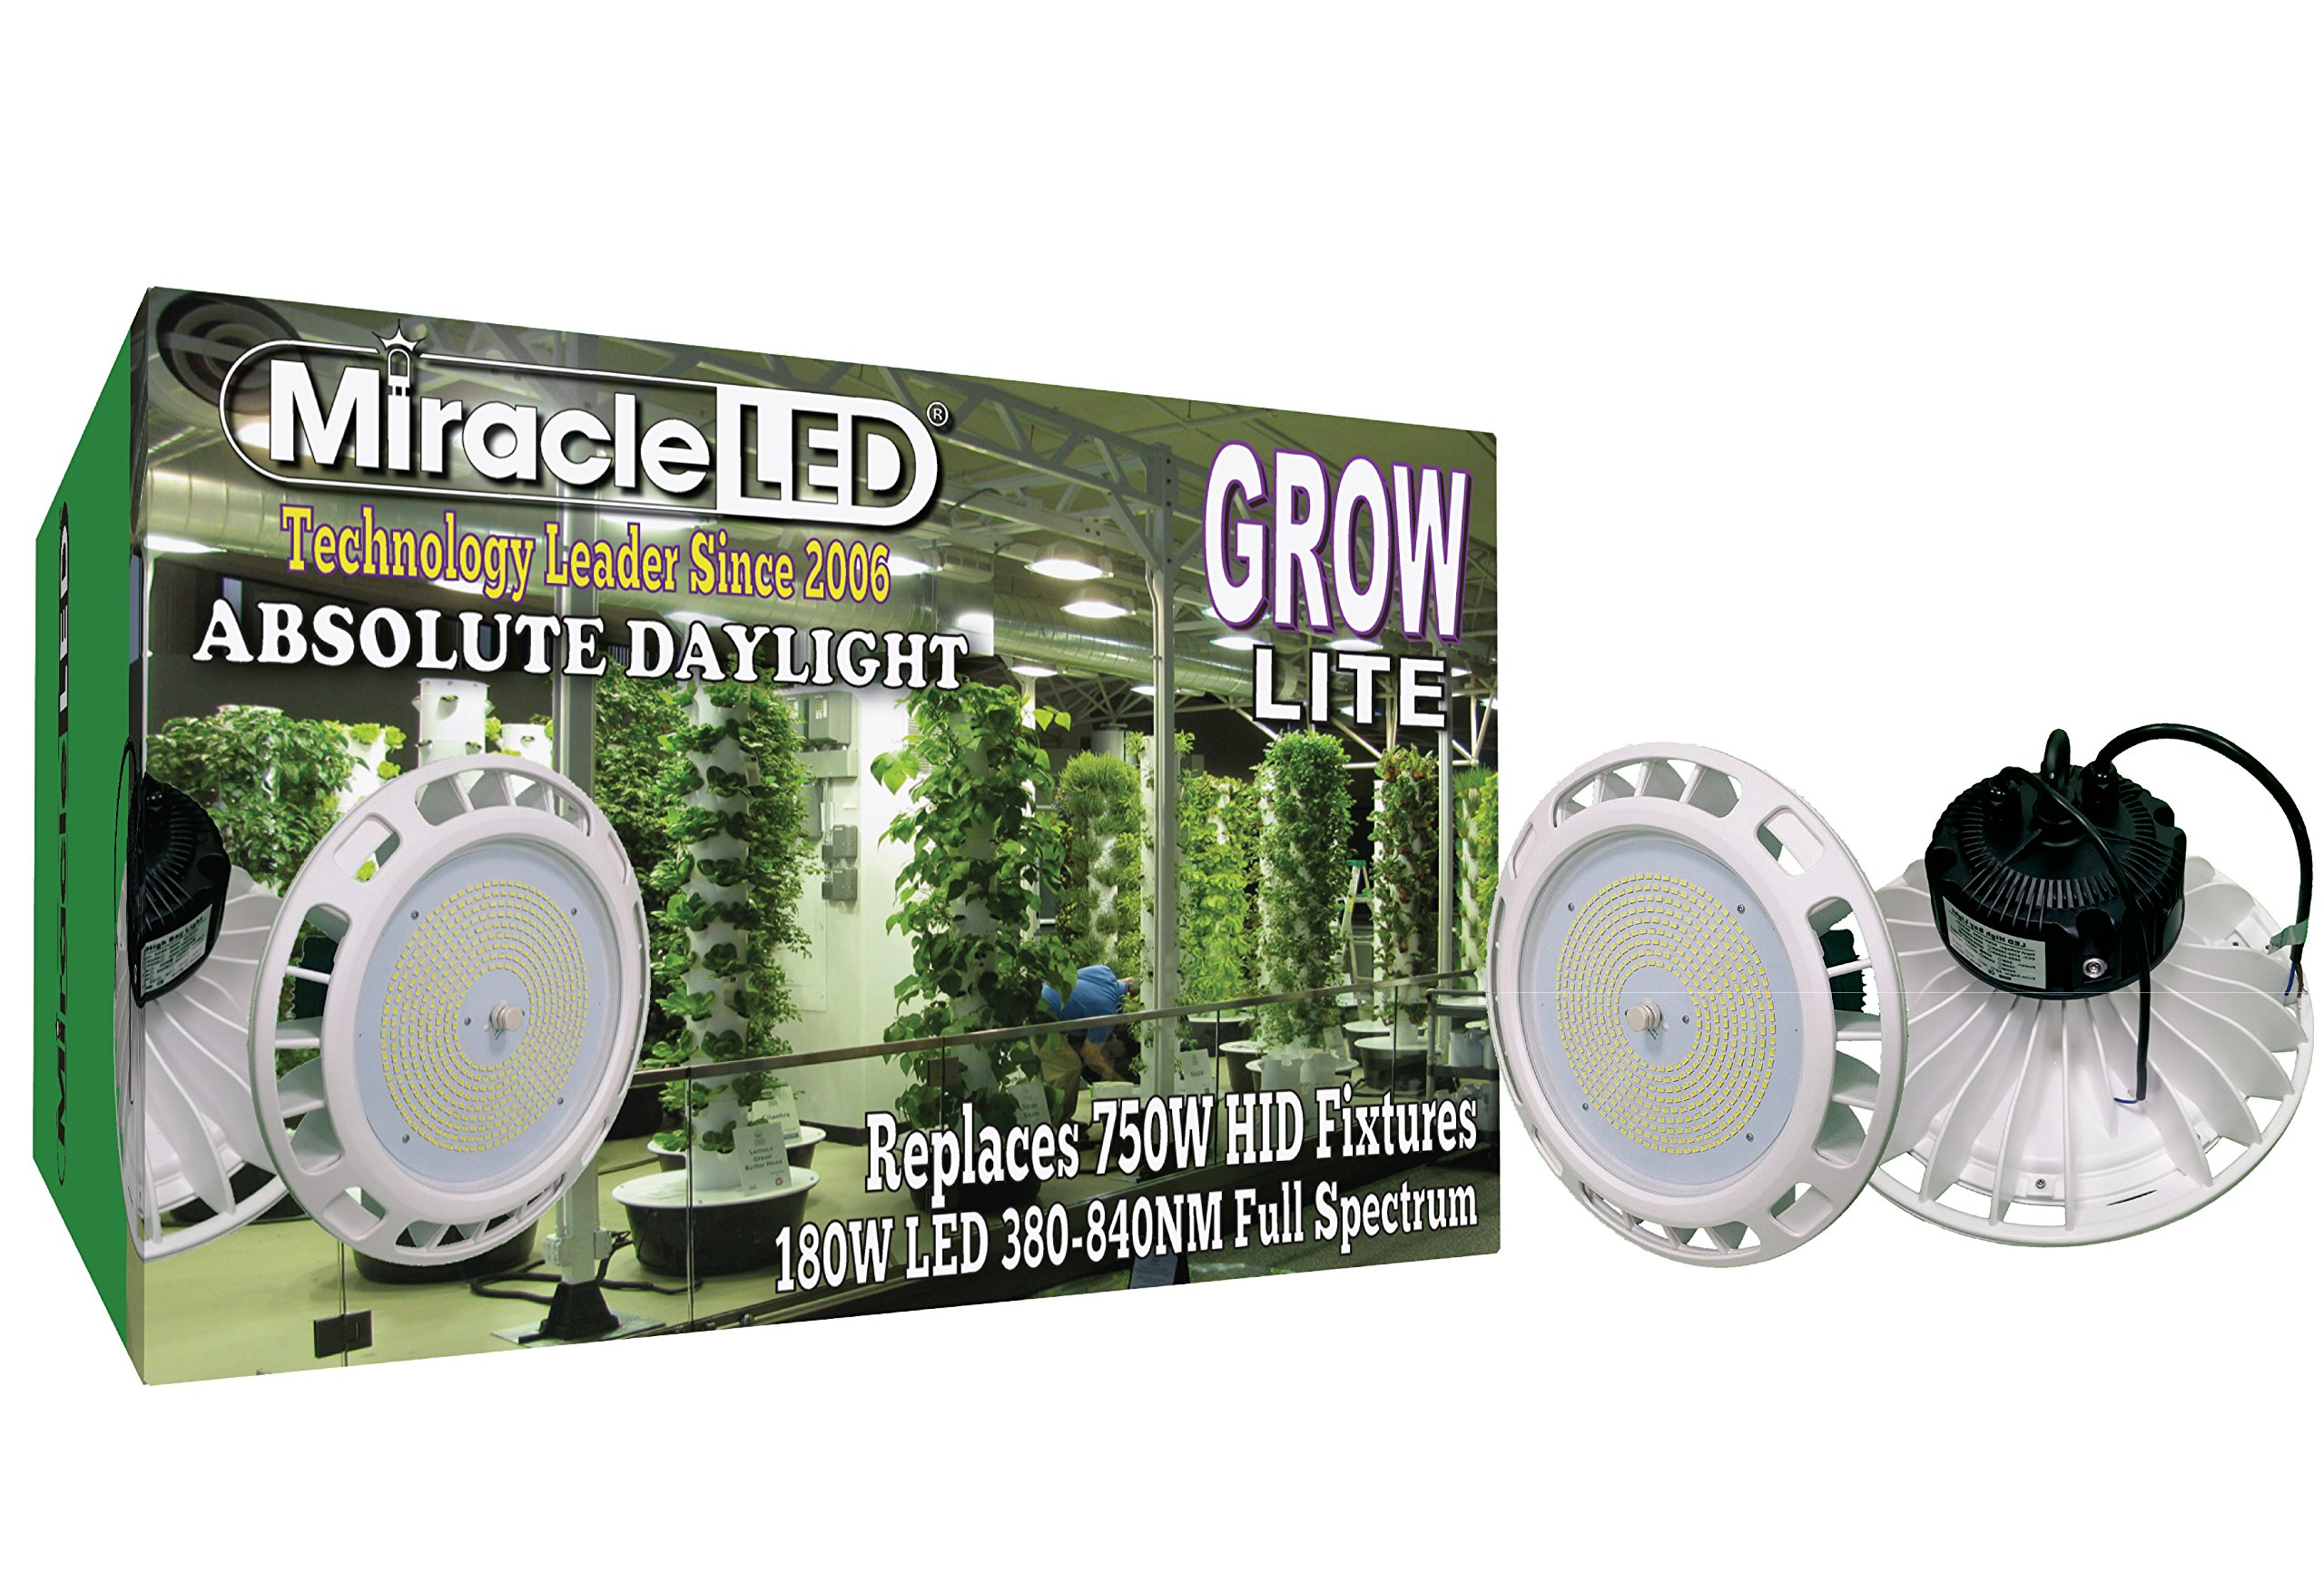 Miracle LED 604338 Spectrum 90-305V 180W High Bay Full Daylight Growlite for Professional Indoor Gardens, White